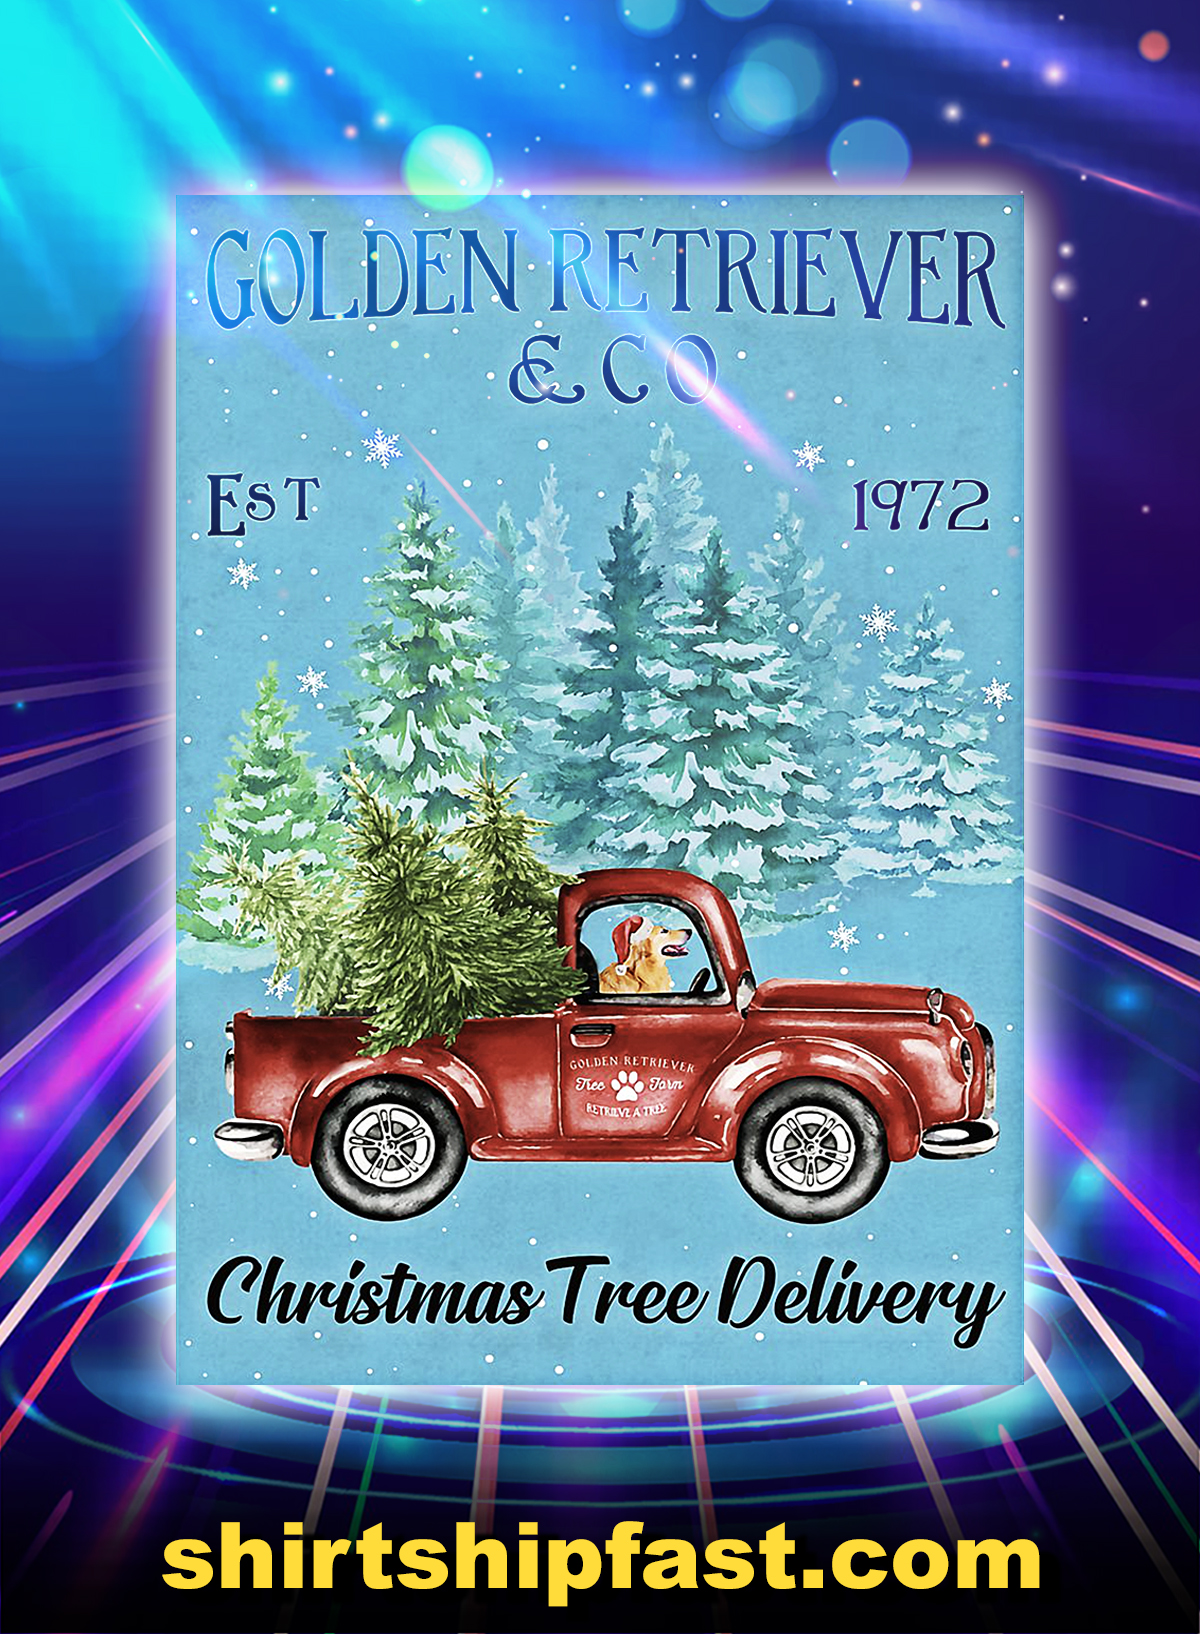 Golden retriever est and co 1972 christmas tree delivery poster - A4